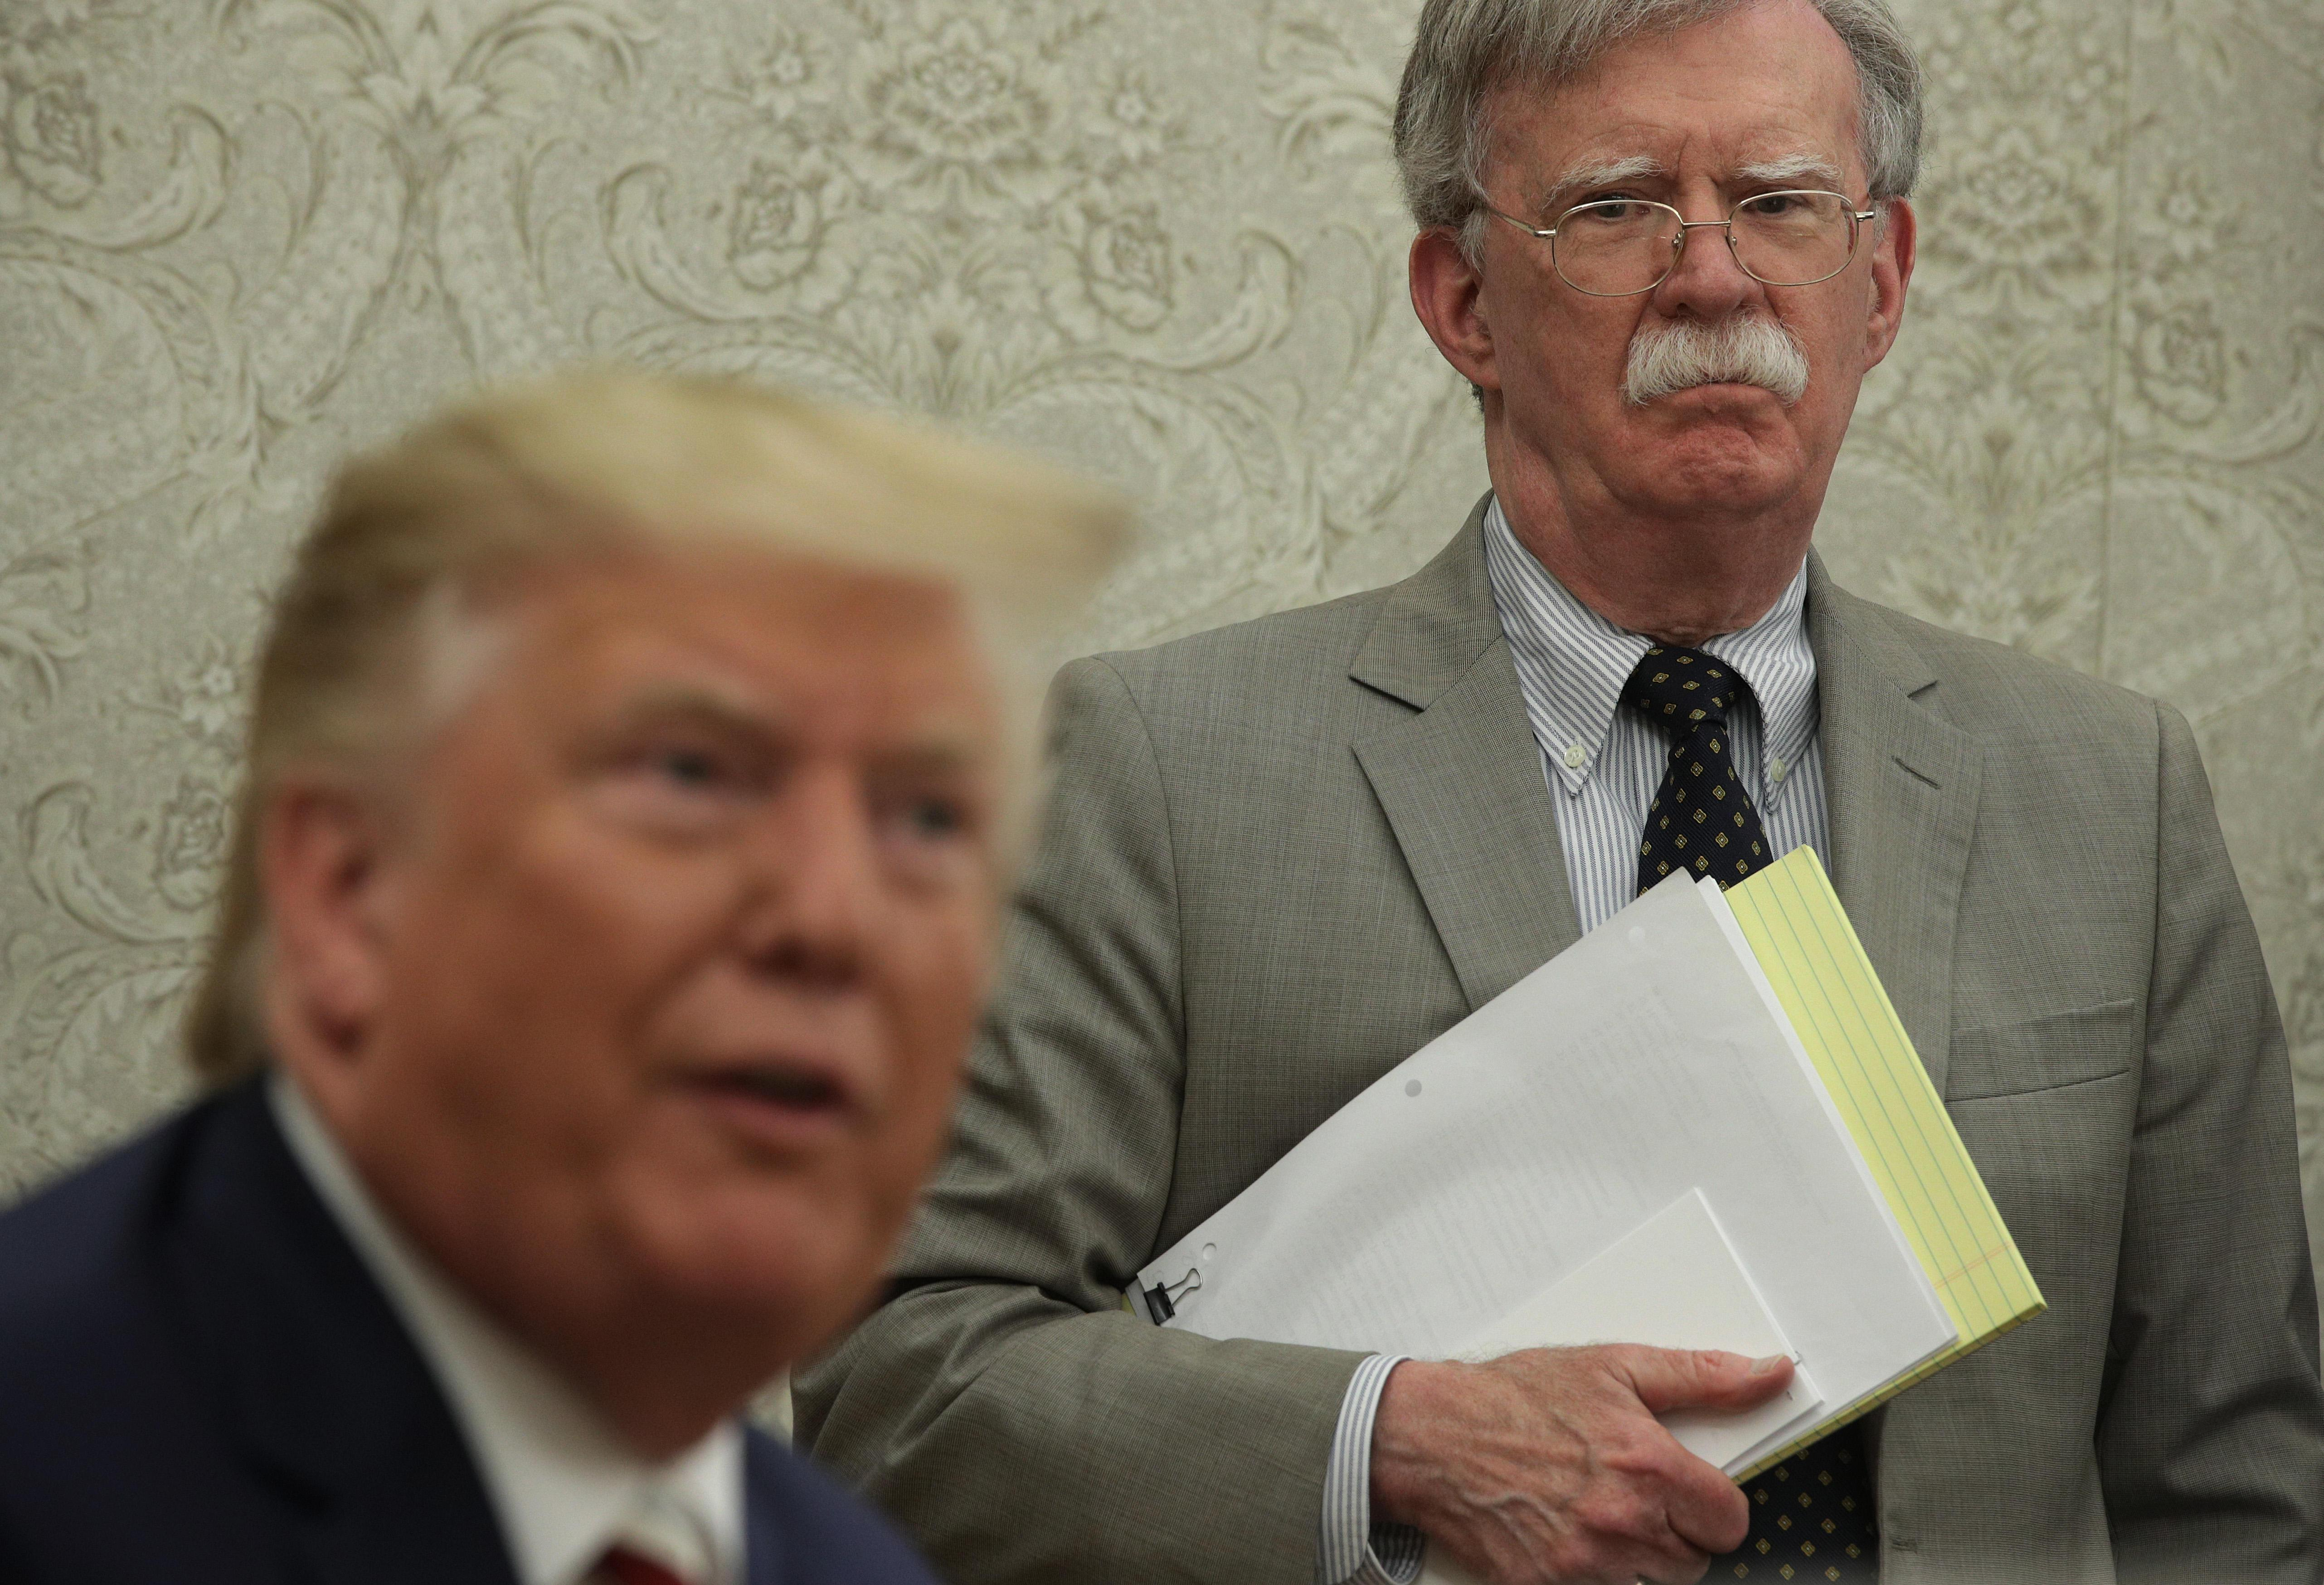 Judge says government's lawsuit against John Bolton over tell-all book can proceed